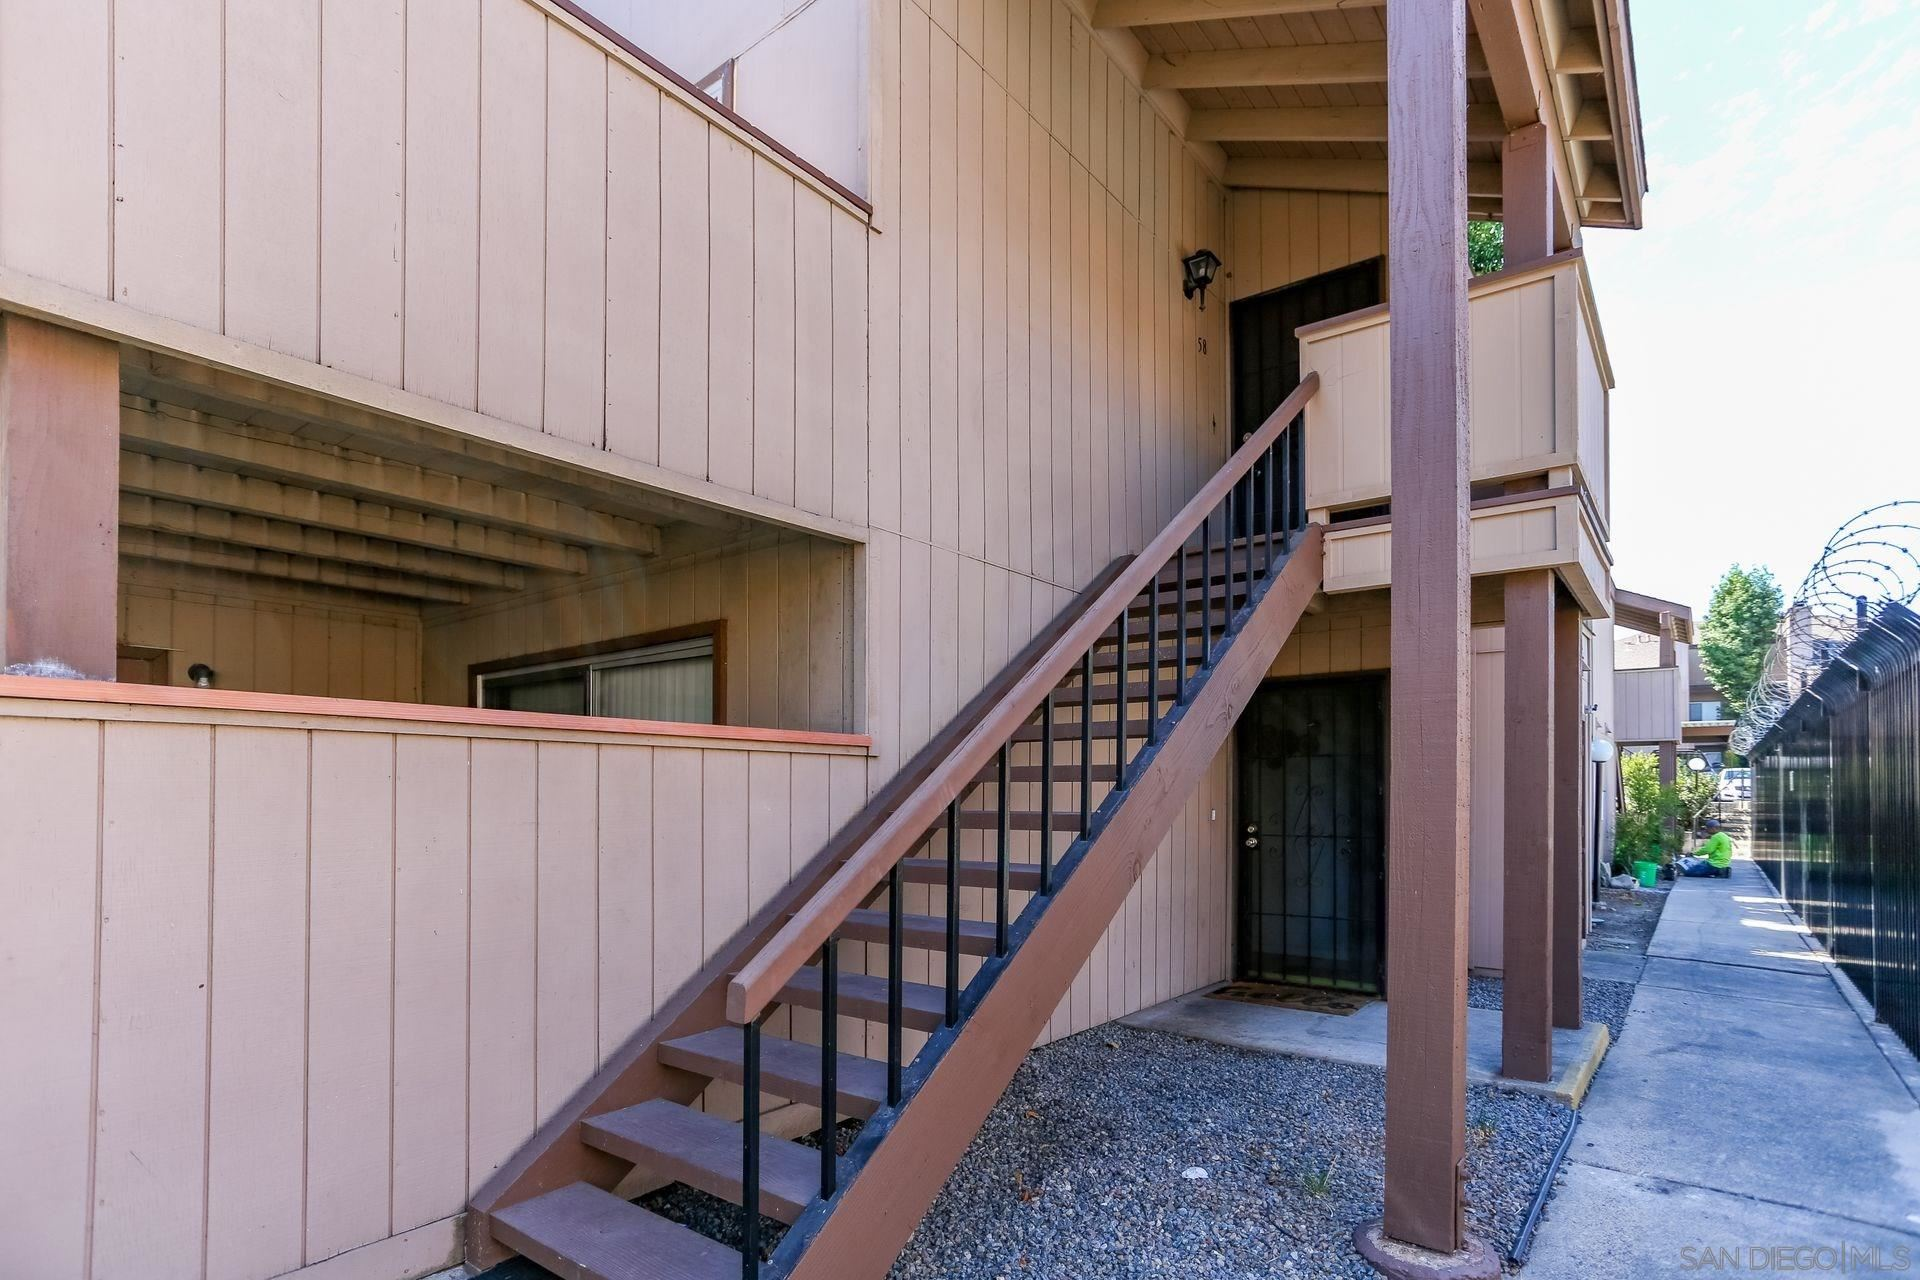 Photo for 6530 College Grove Dr #58, San Diego, CA 92115 (MLS # 200049025)